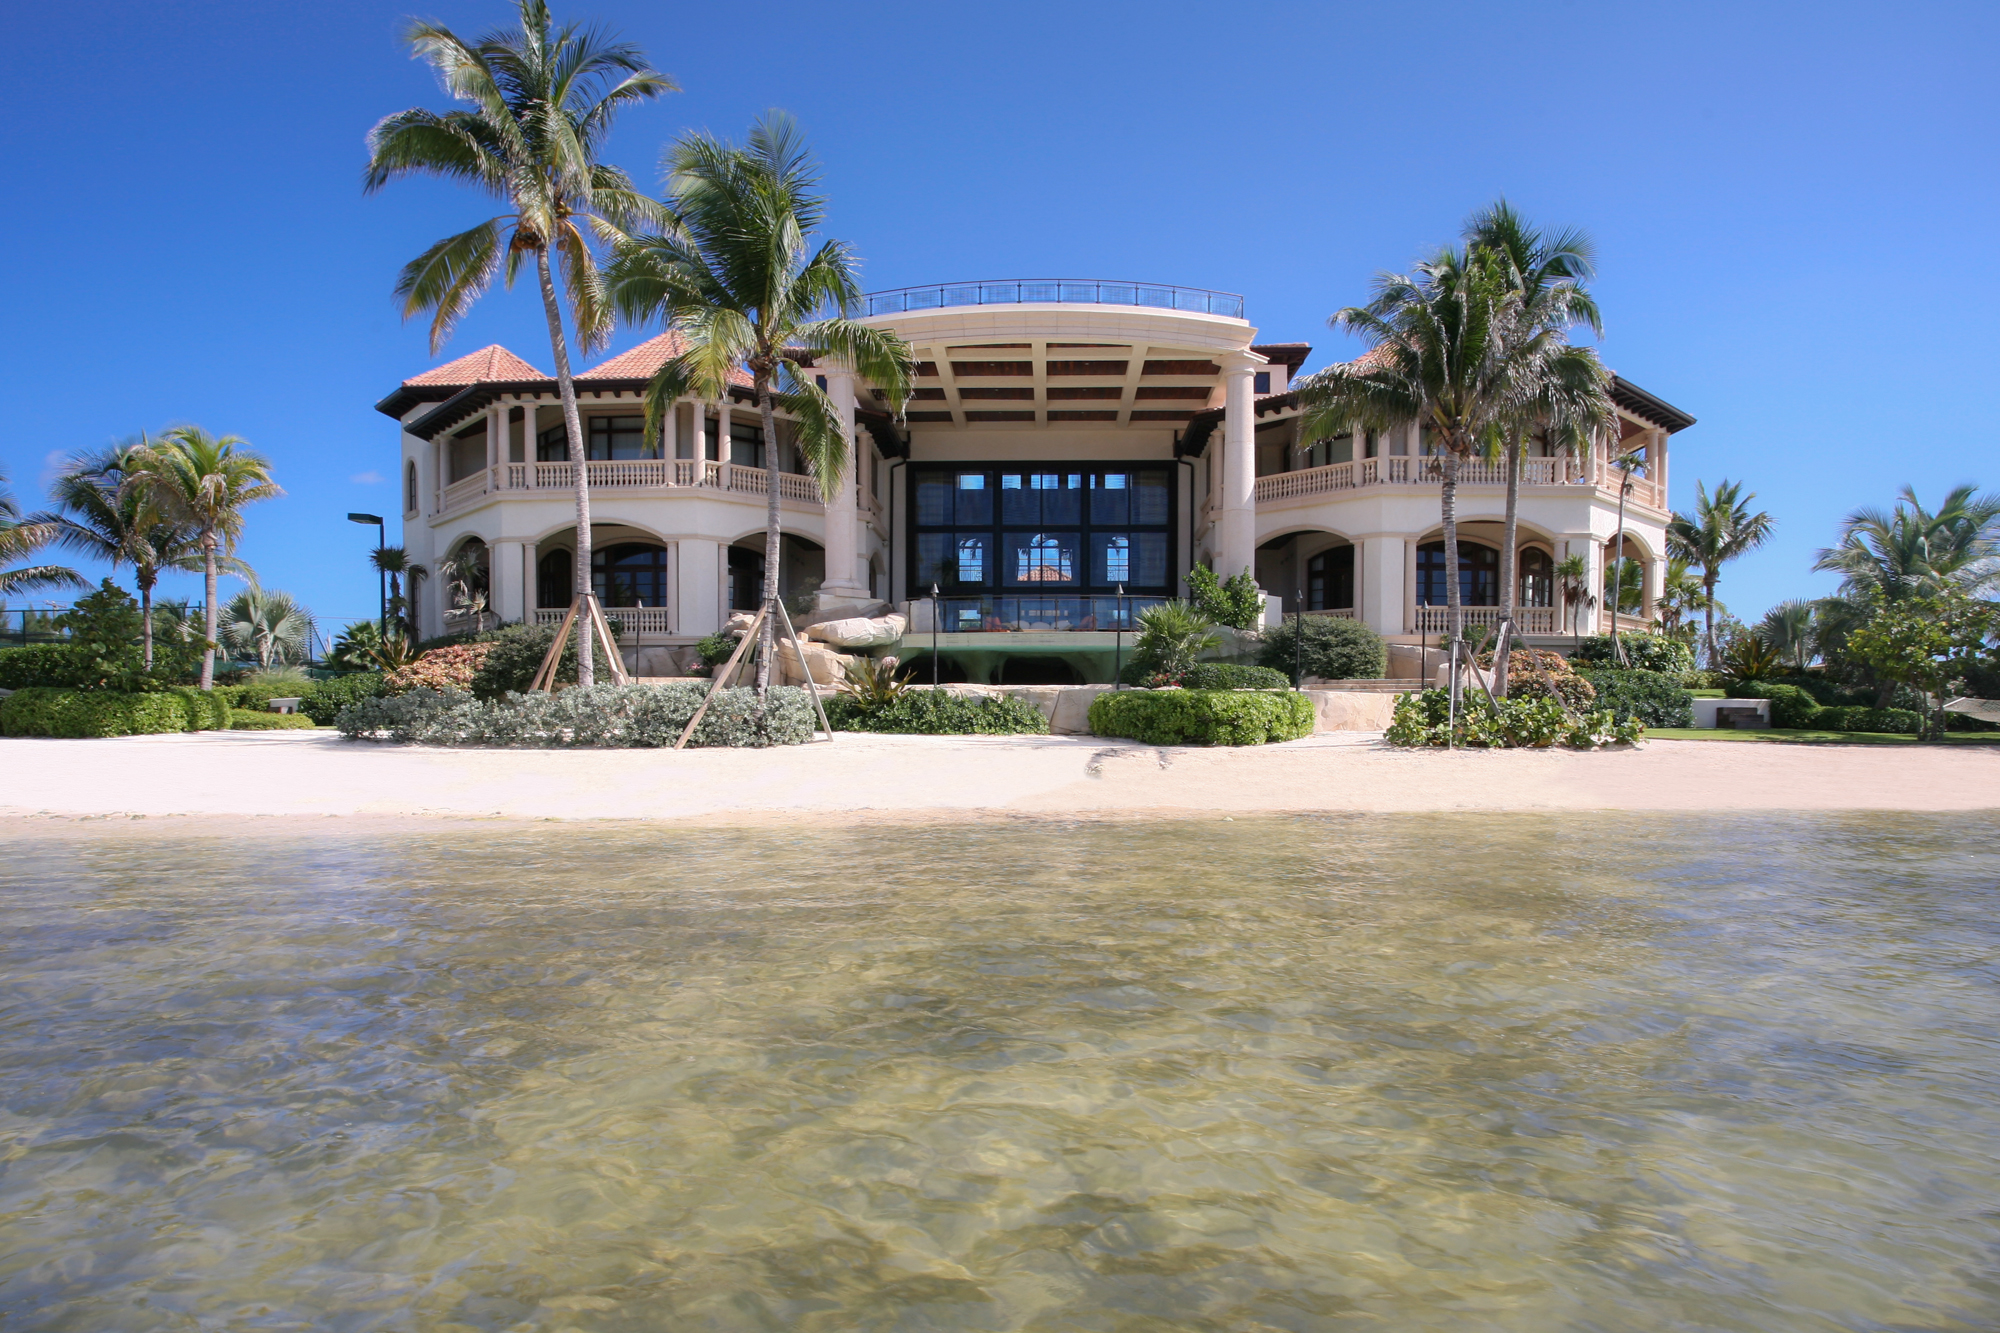 一戸建て のために 売買 アット Castillo Caribe, Caribbean luxury real estate Castillo Caribe, S Sound Rd, Grand Cayman, Cayman Islands South Sound, グランドケイマン, - ケイマン諸島